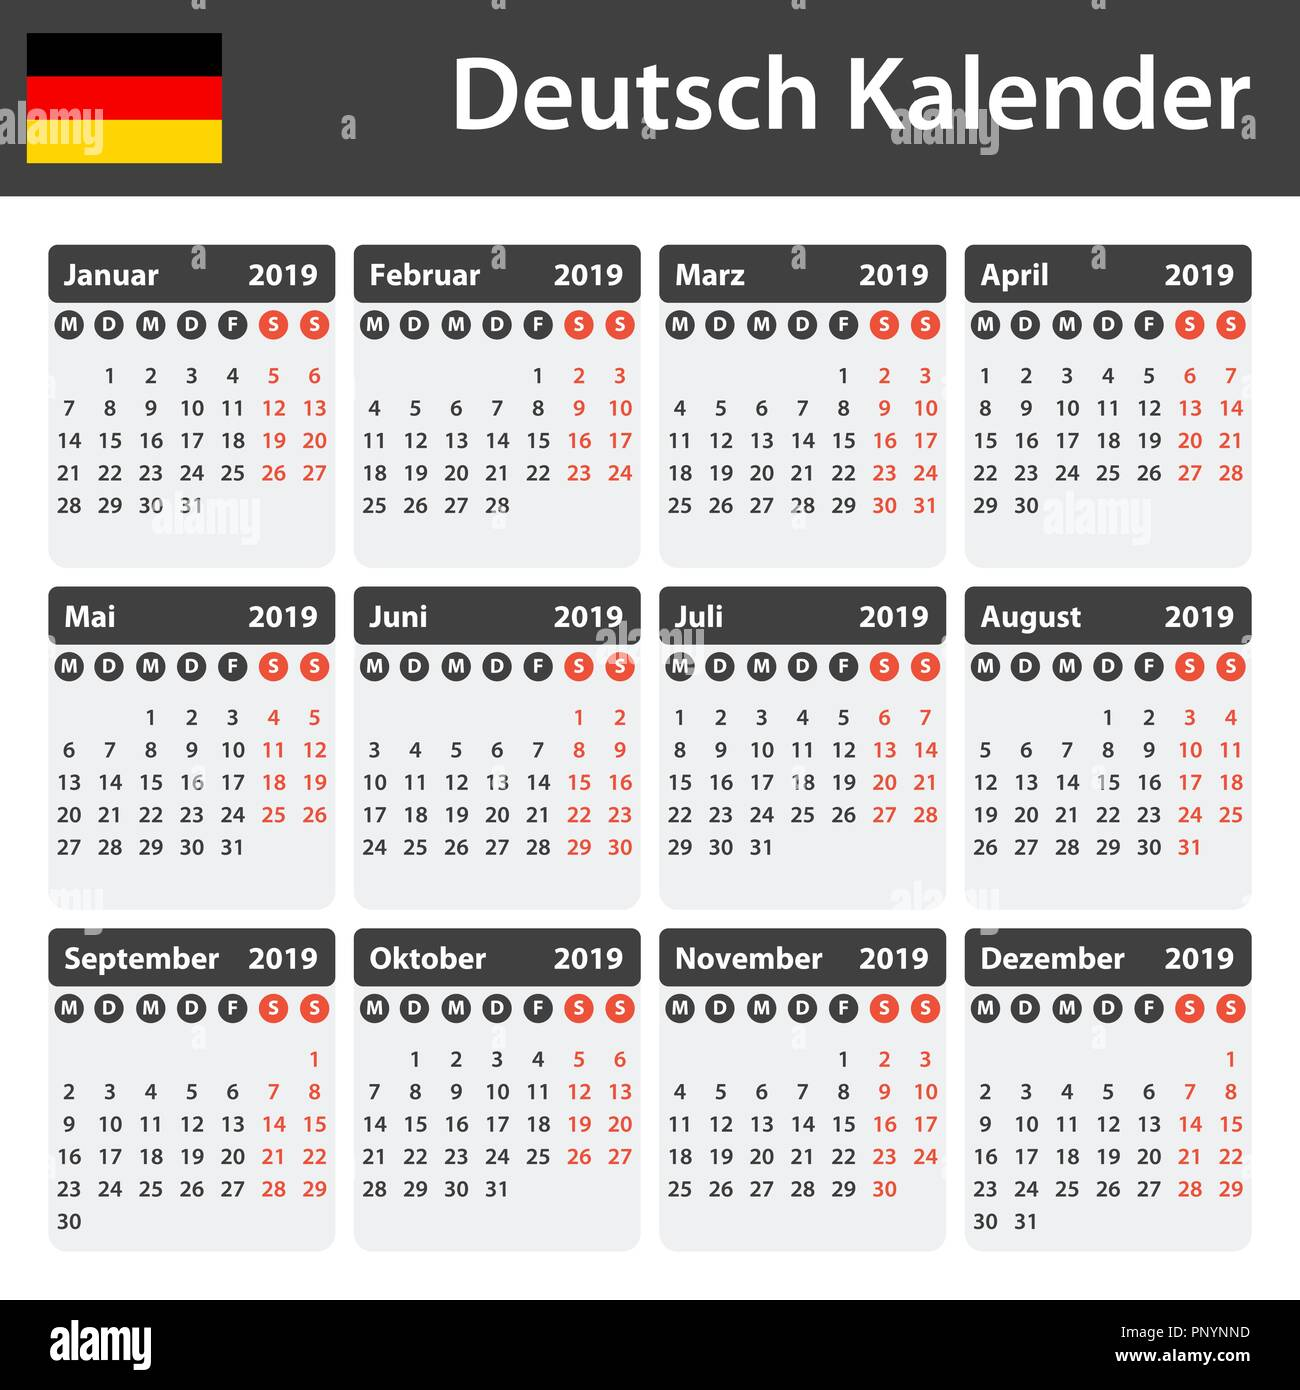 german calendar for 2019 scheduler agenda or diary. Black Bedroom Furniture Sets. Home Design Ideas